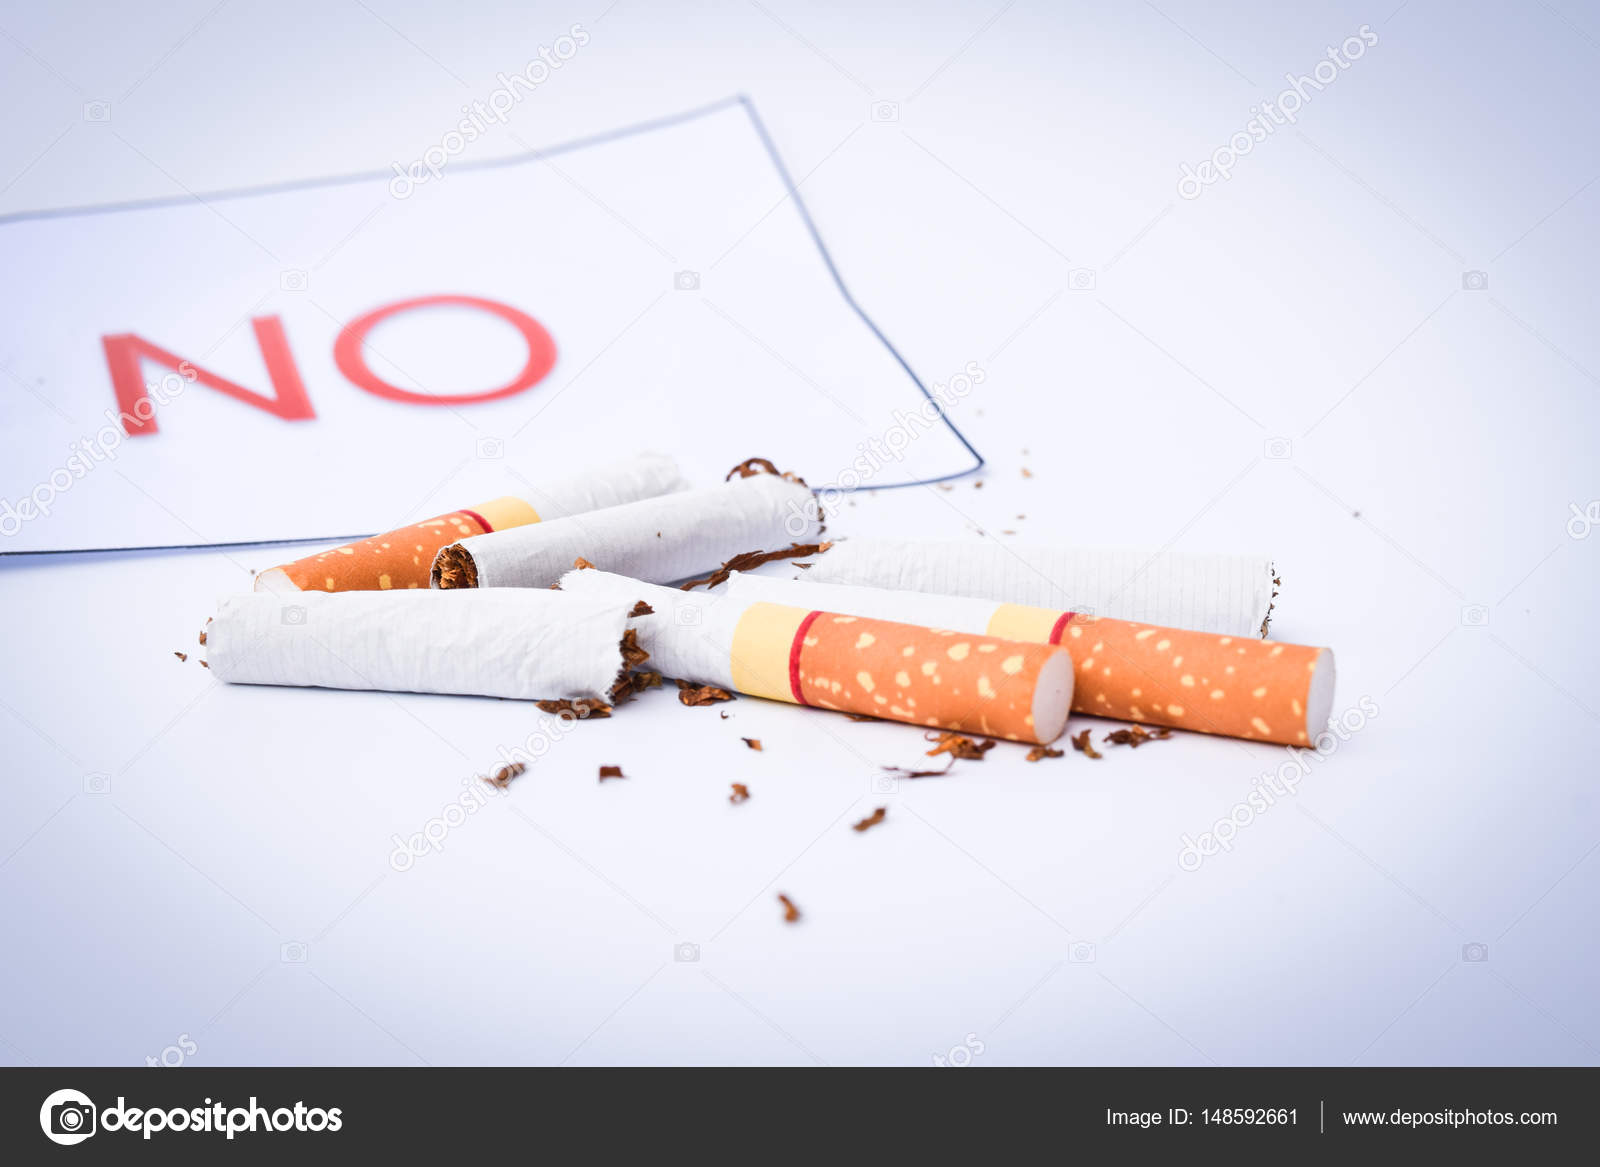 Cigarette With No Texture World No Tobacco Day Concept Stock Photo C Apichart609 Gmail Com 148592661